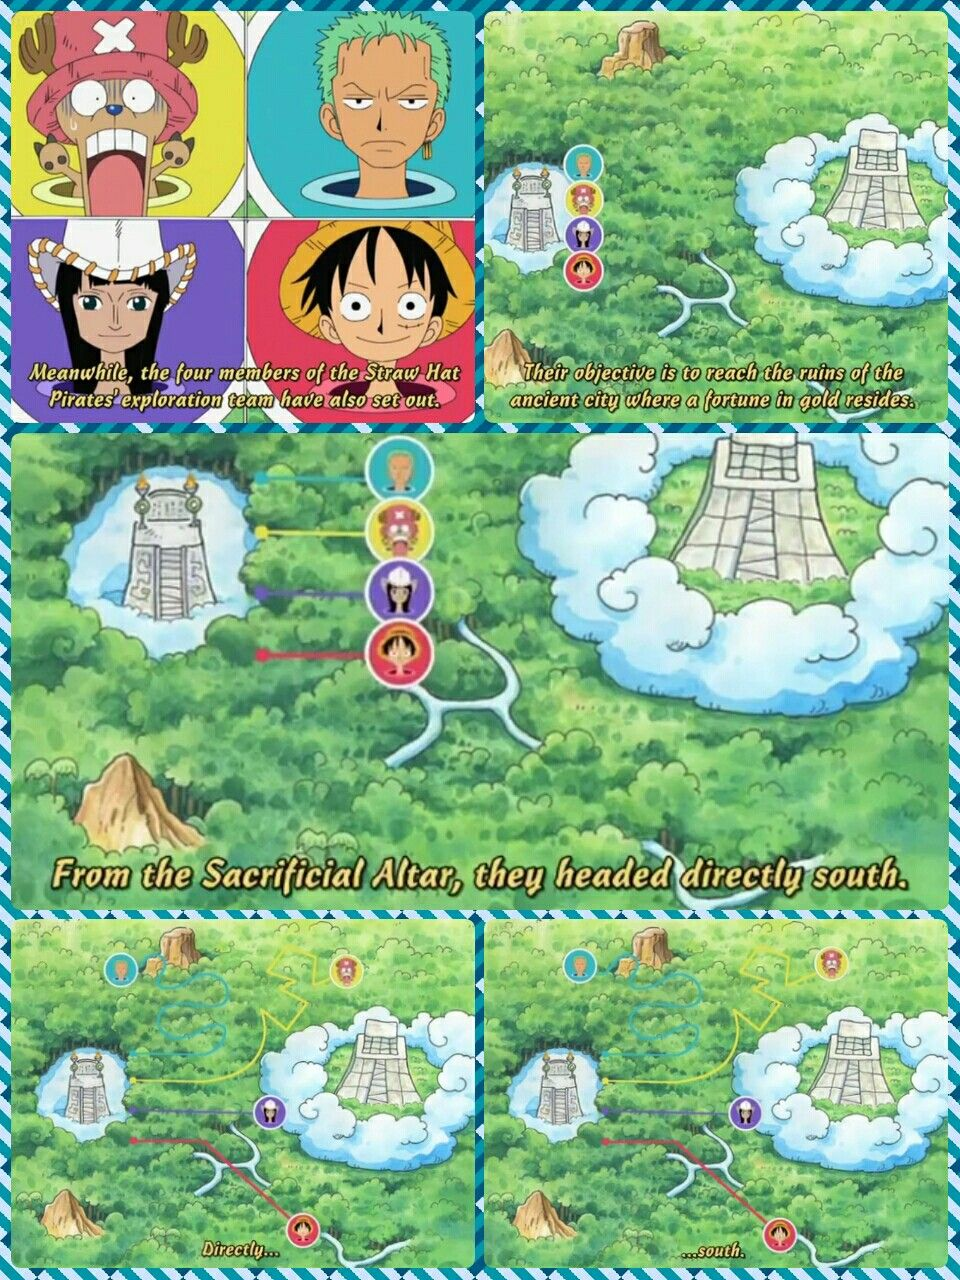 Chopper robin zoro luffy sacrificial altar skypiea text quote comic funny lost map one piece photo collages